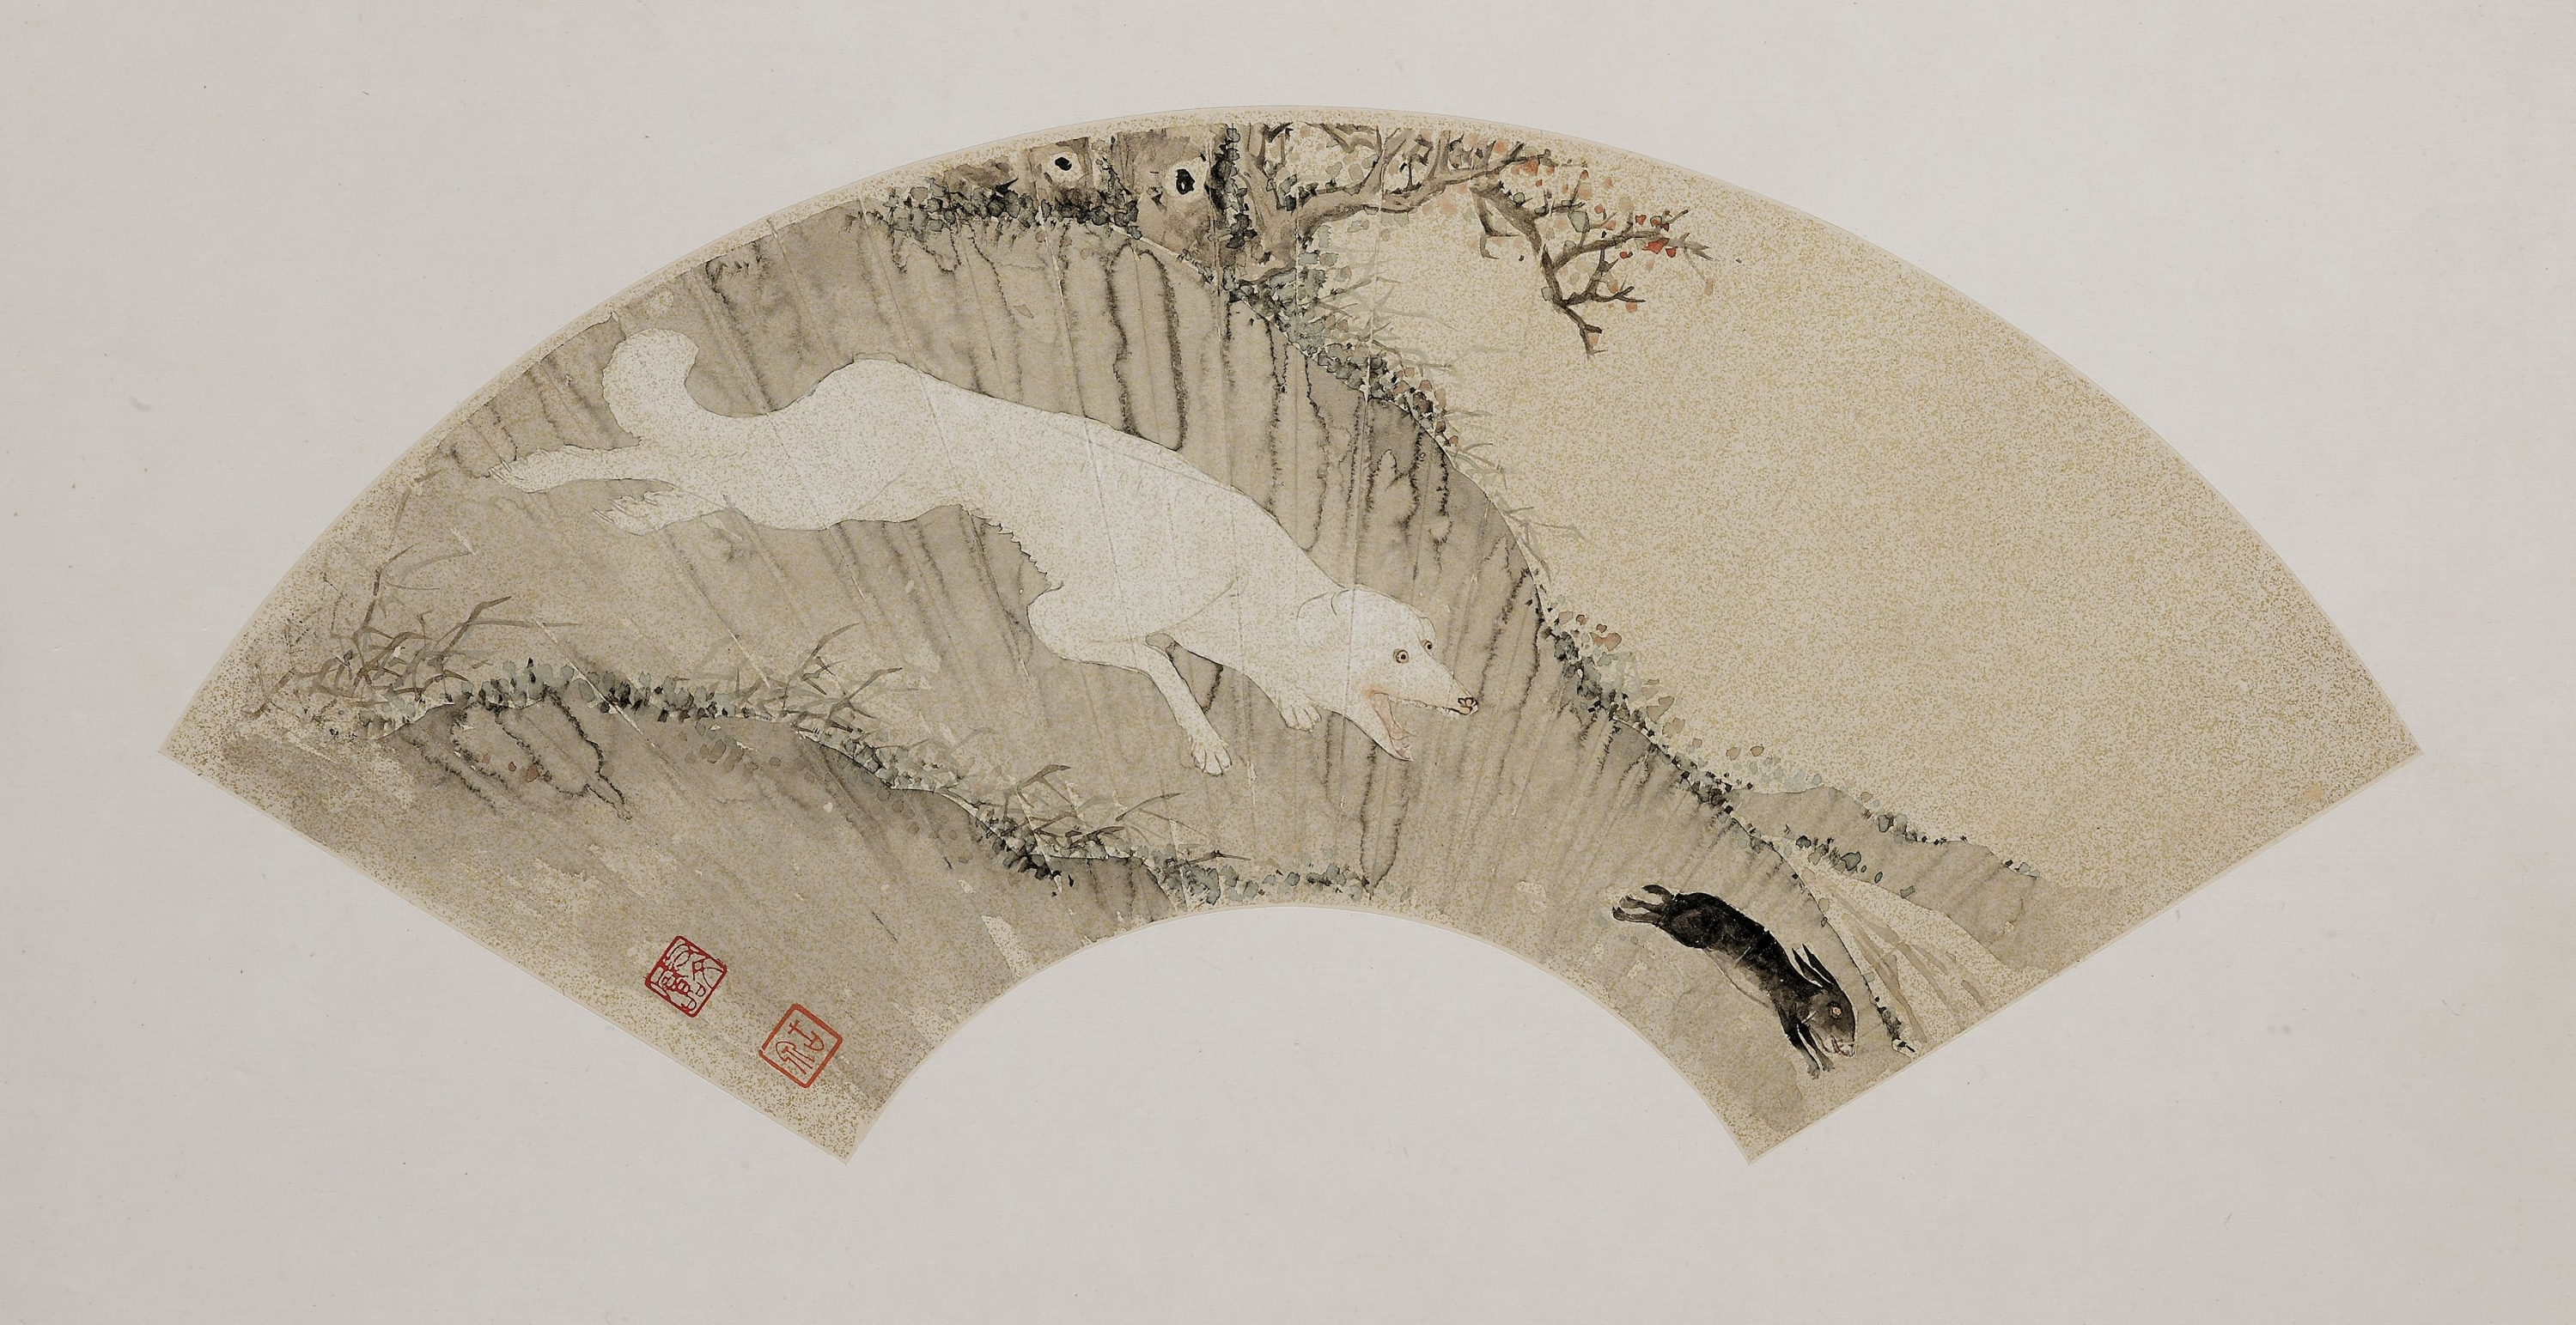 """Hound Hunting Rabbit Ju Lian (1828—1904) Folding fan, ink and colour on gold-flecked paper Gift of Mr. Ho Iu-kwong, Mr. Fok Bo-choi, Mr. Li De and others  Art museum collection  Acc. no. 1973.0324  The long leg and slim belly give great speed and agility to the sighthound, which make it possible to chase preys like rabbit. This uncommon scenario of hound's hunting was captured by a Late-Qing Cantonese painter Ju Lian, who mostly painted plants and animals in albums and on fans. The painting was done in Ju's famous techniques called """"boneless (no outline)"""" and """"break-in (i.e. dashing water against a moist surface)""""."""